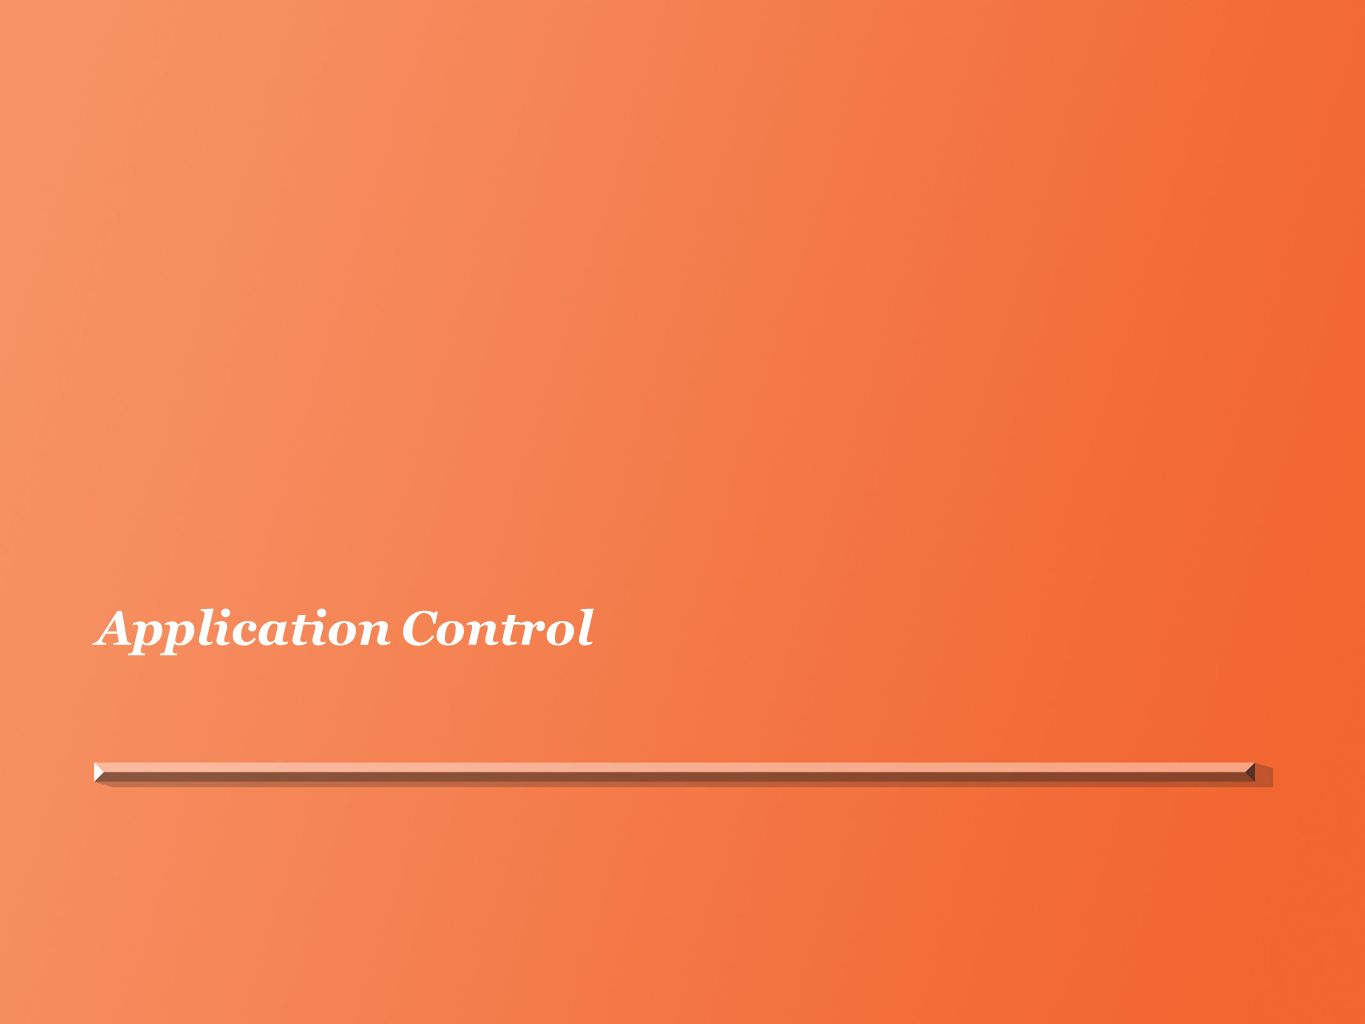 Application Control